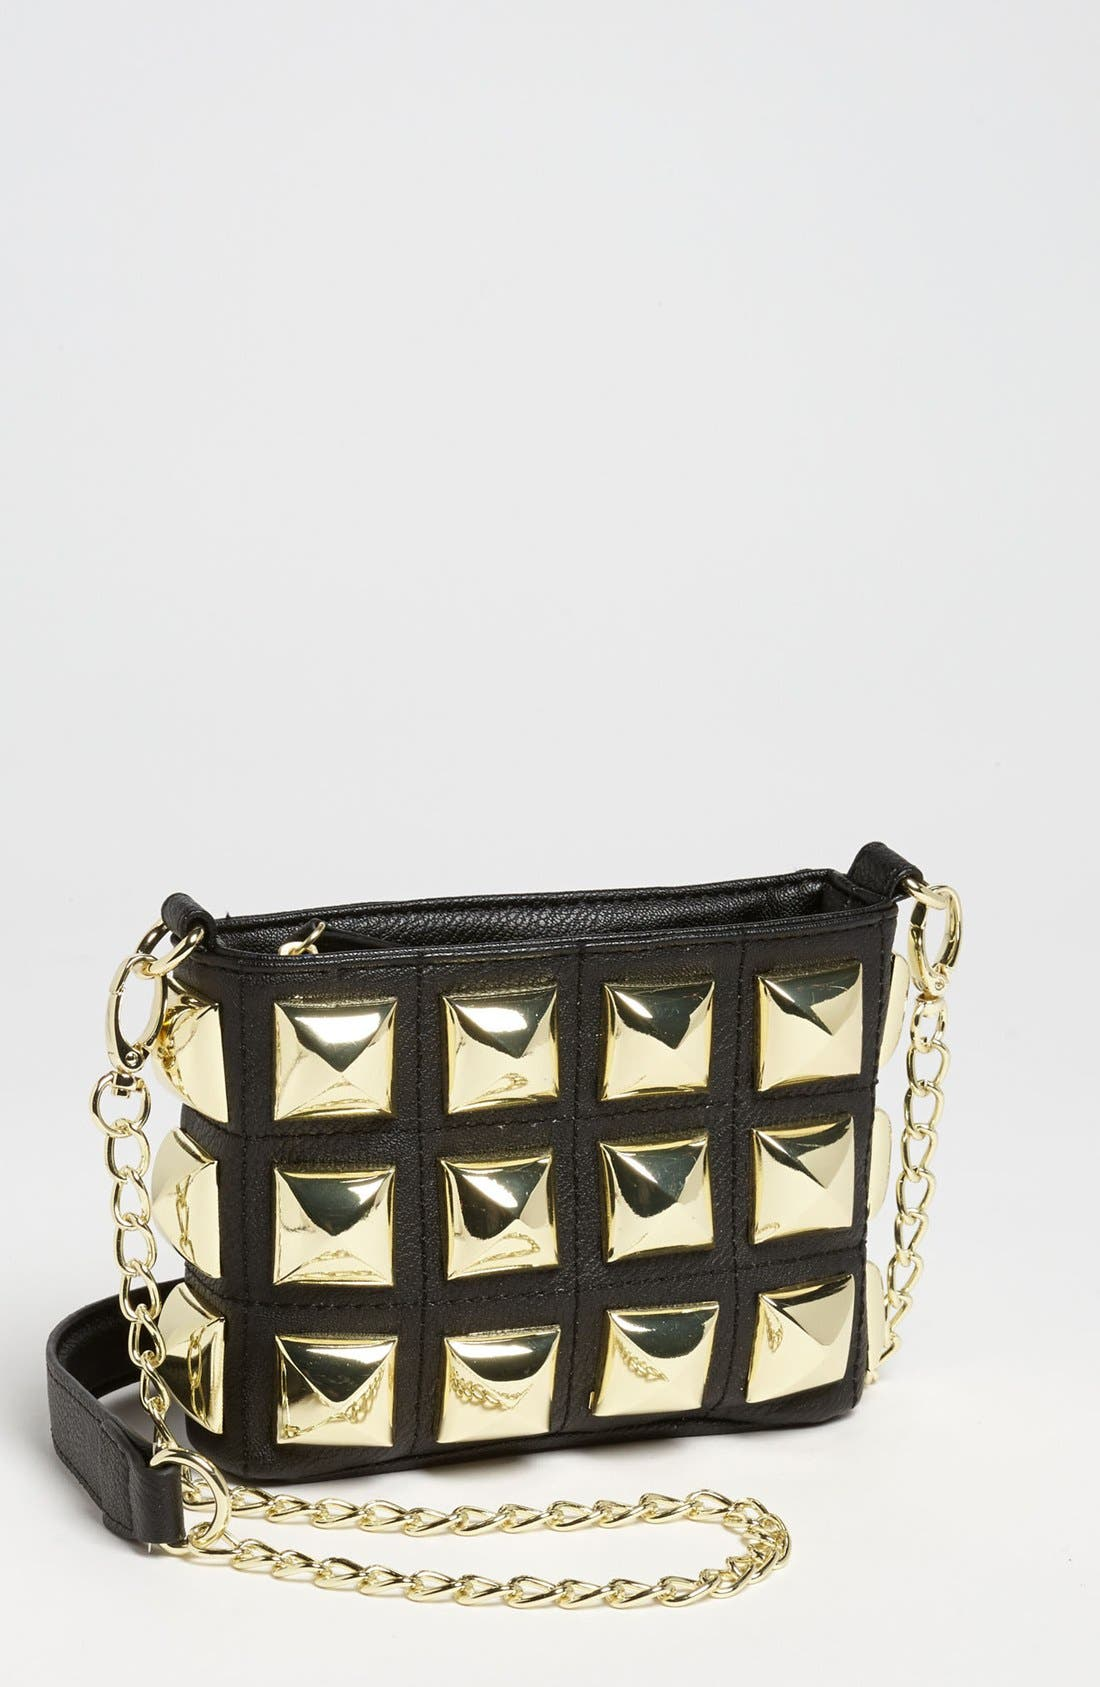 Alternate Image 1 Selected - Betsey Johnson 'Stud Muffin' Crossbody Bag